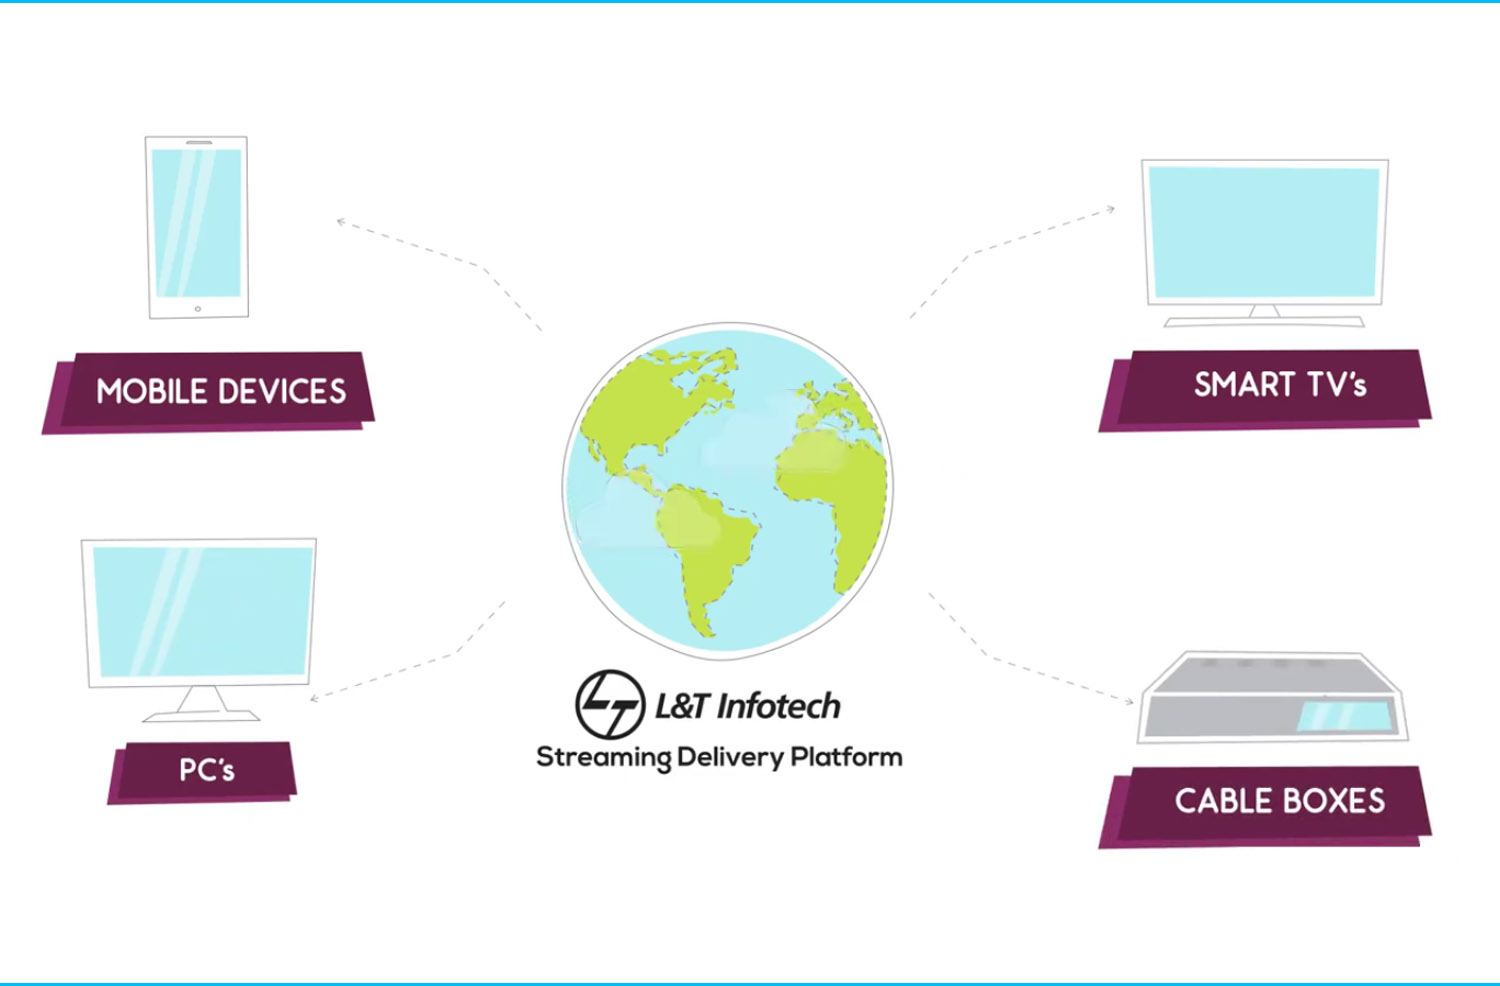 Cloud based Video Streaming Delivery Platform